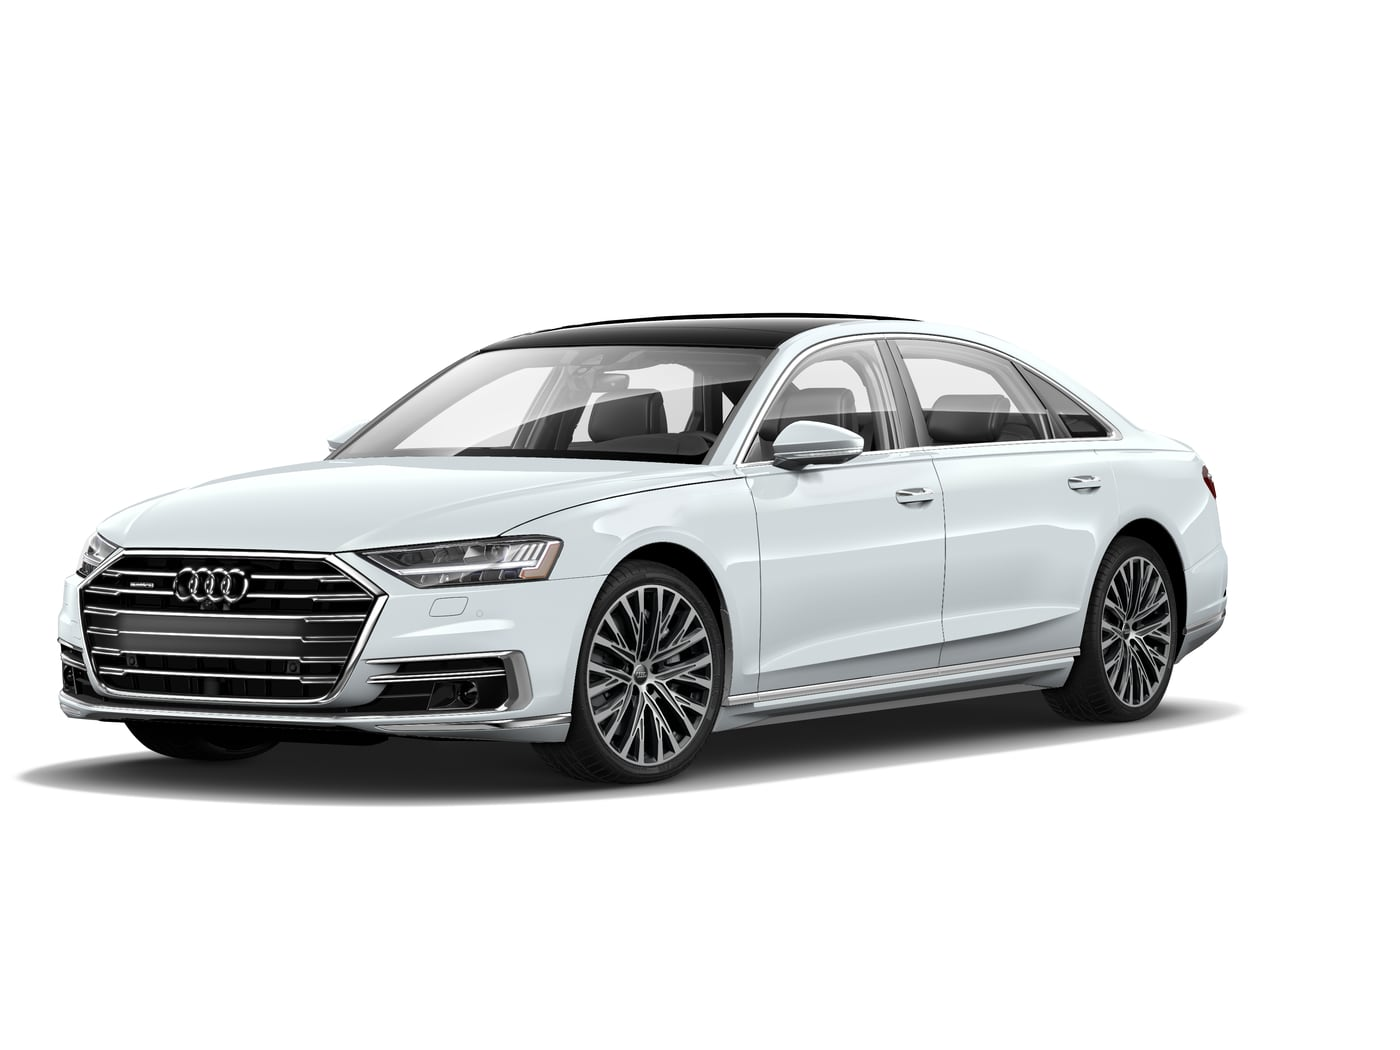 New 2019 Audi A8 3.0 TFSI For Sale in Highland Park IL